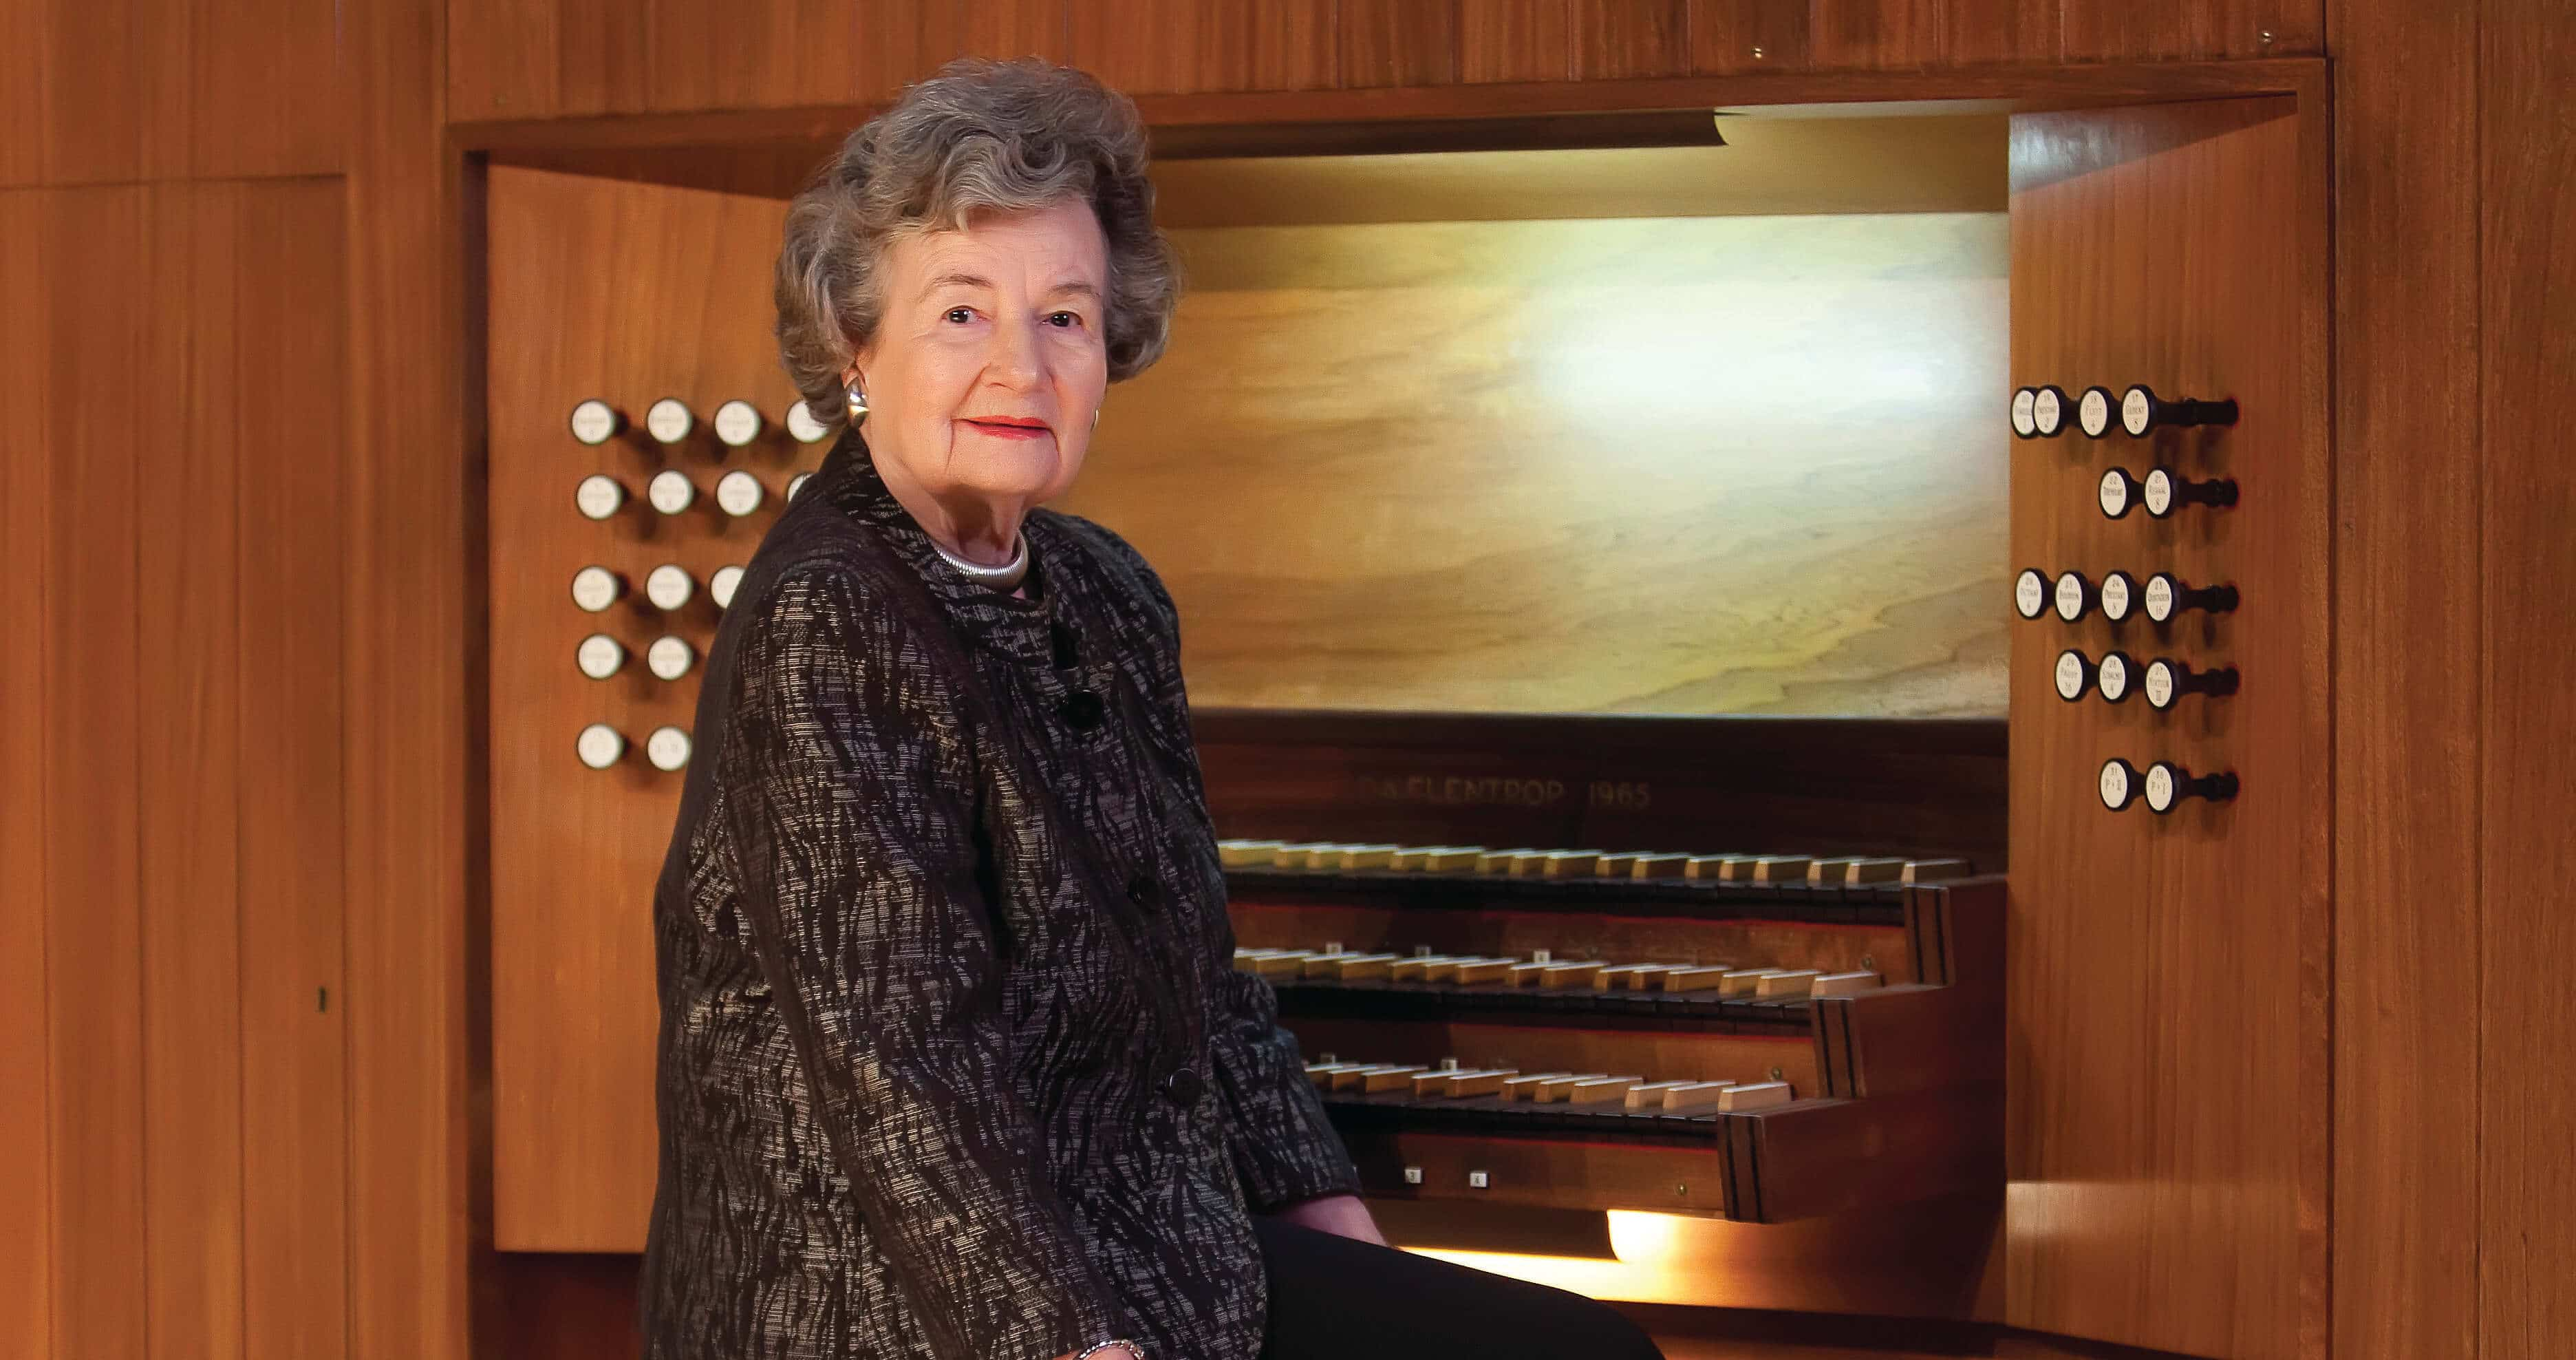 Organist, 100, is still composing new works